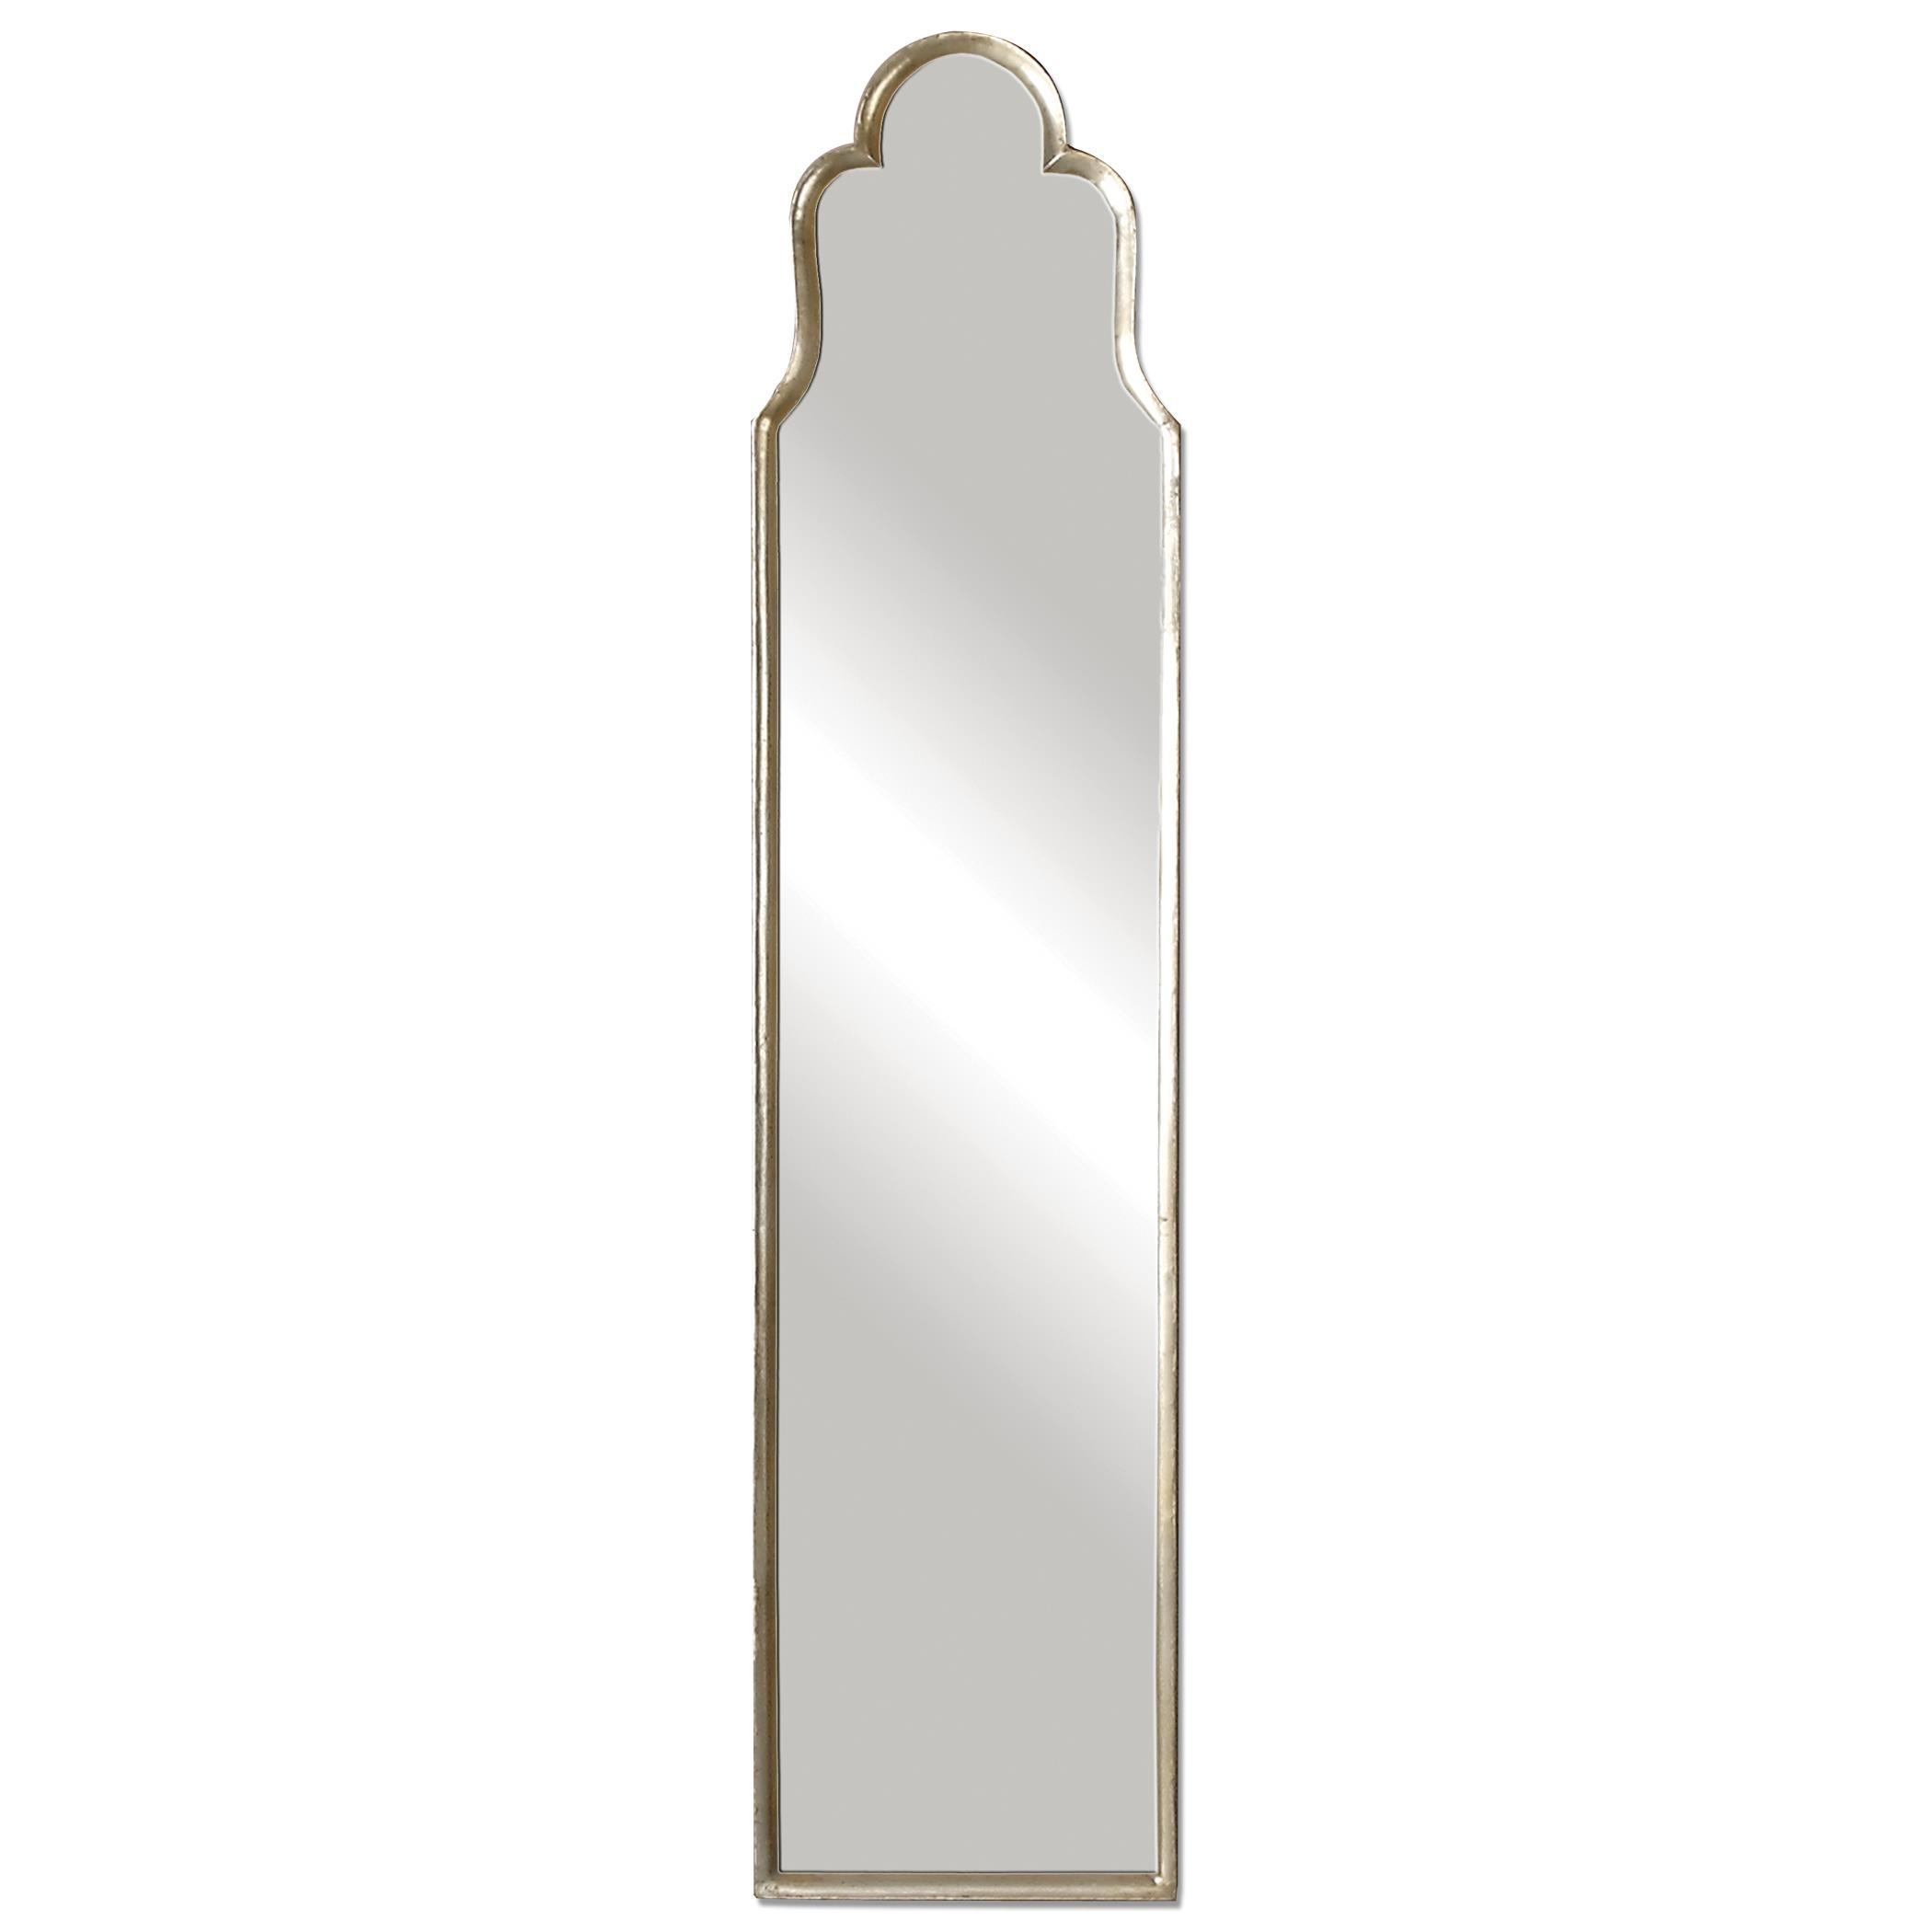 Uttermost Mirrors Cerano Arched Silver Mirror - Item Number: 12939